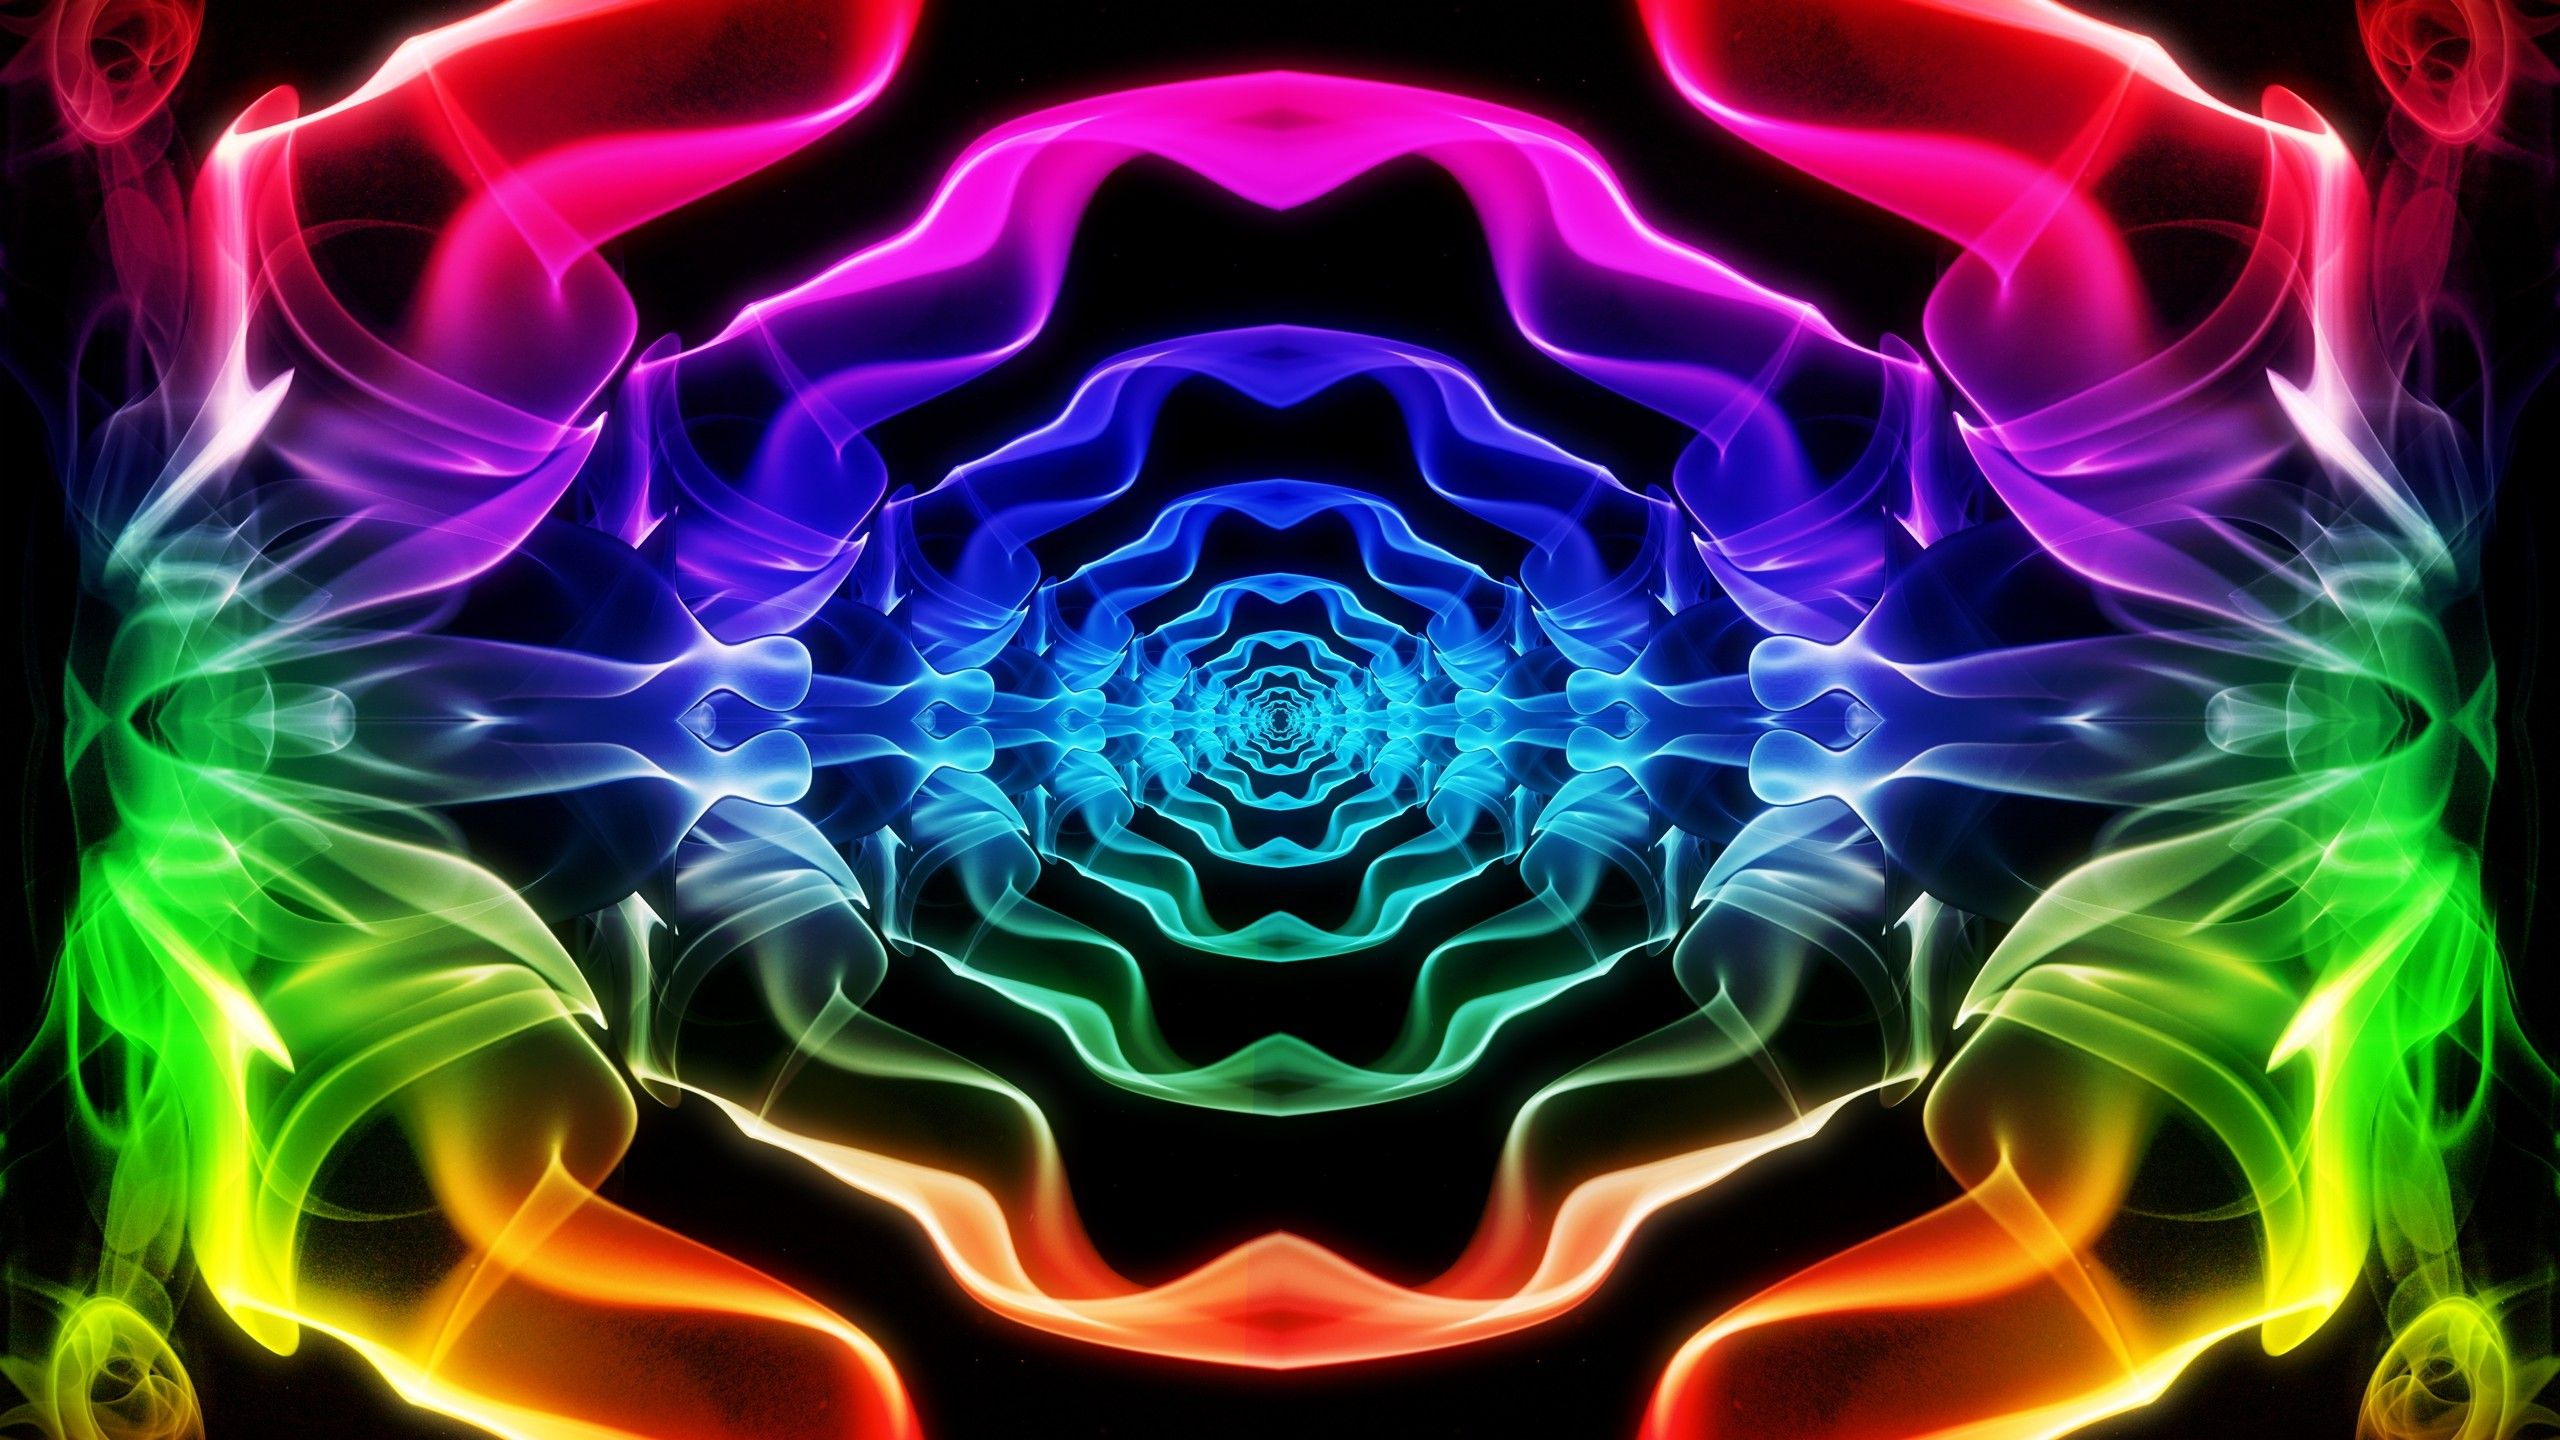 Abstract smoke psychedelic color spectrum wallpaper